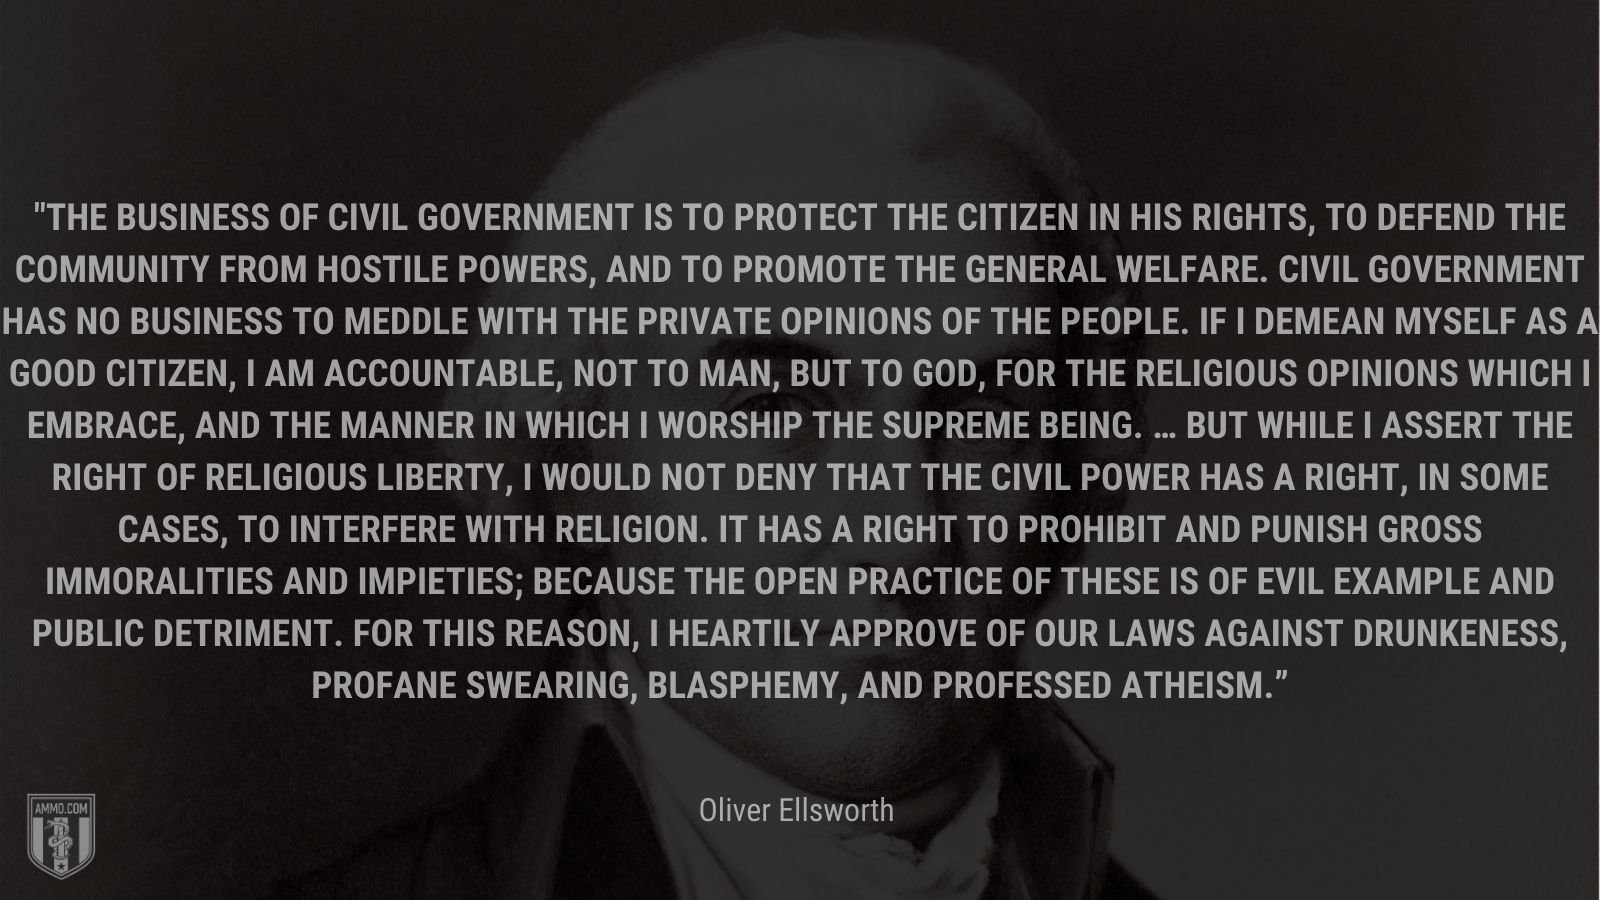 """"""" The business of civil government is to protect the citizen in his rights, to defend the community from hostile powers, and to promote the general welfare. Civil government has no business to meddle with the private opinions of the people. If I demean myself as a good citizen, I am accountable, not to man, but to God, for the religious opinions which I embrace, and the manner in which I worship the supreme being. … But while I assert the right of religious liberty, I would not deny that the civil power has a right, in some cases, to interfere with religion. It has a right to prohibit and punish gross immoralities and impieties; because the open practice of these is of evil example and public detriment. For this reason, I heartily approve of our laws against drunkeness, profane swearing, blasphemy, and professed atheism."""" - Oliver Ellsworth"""